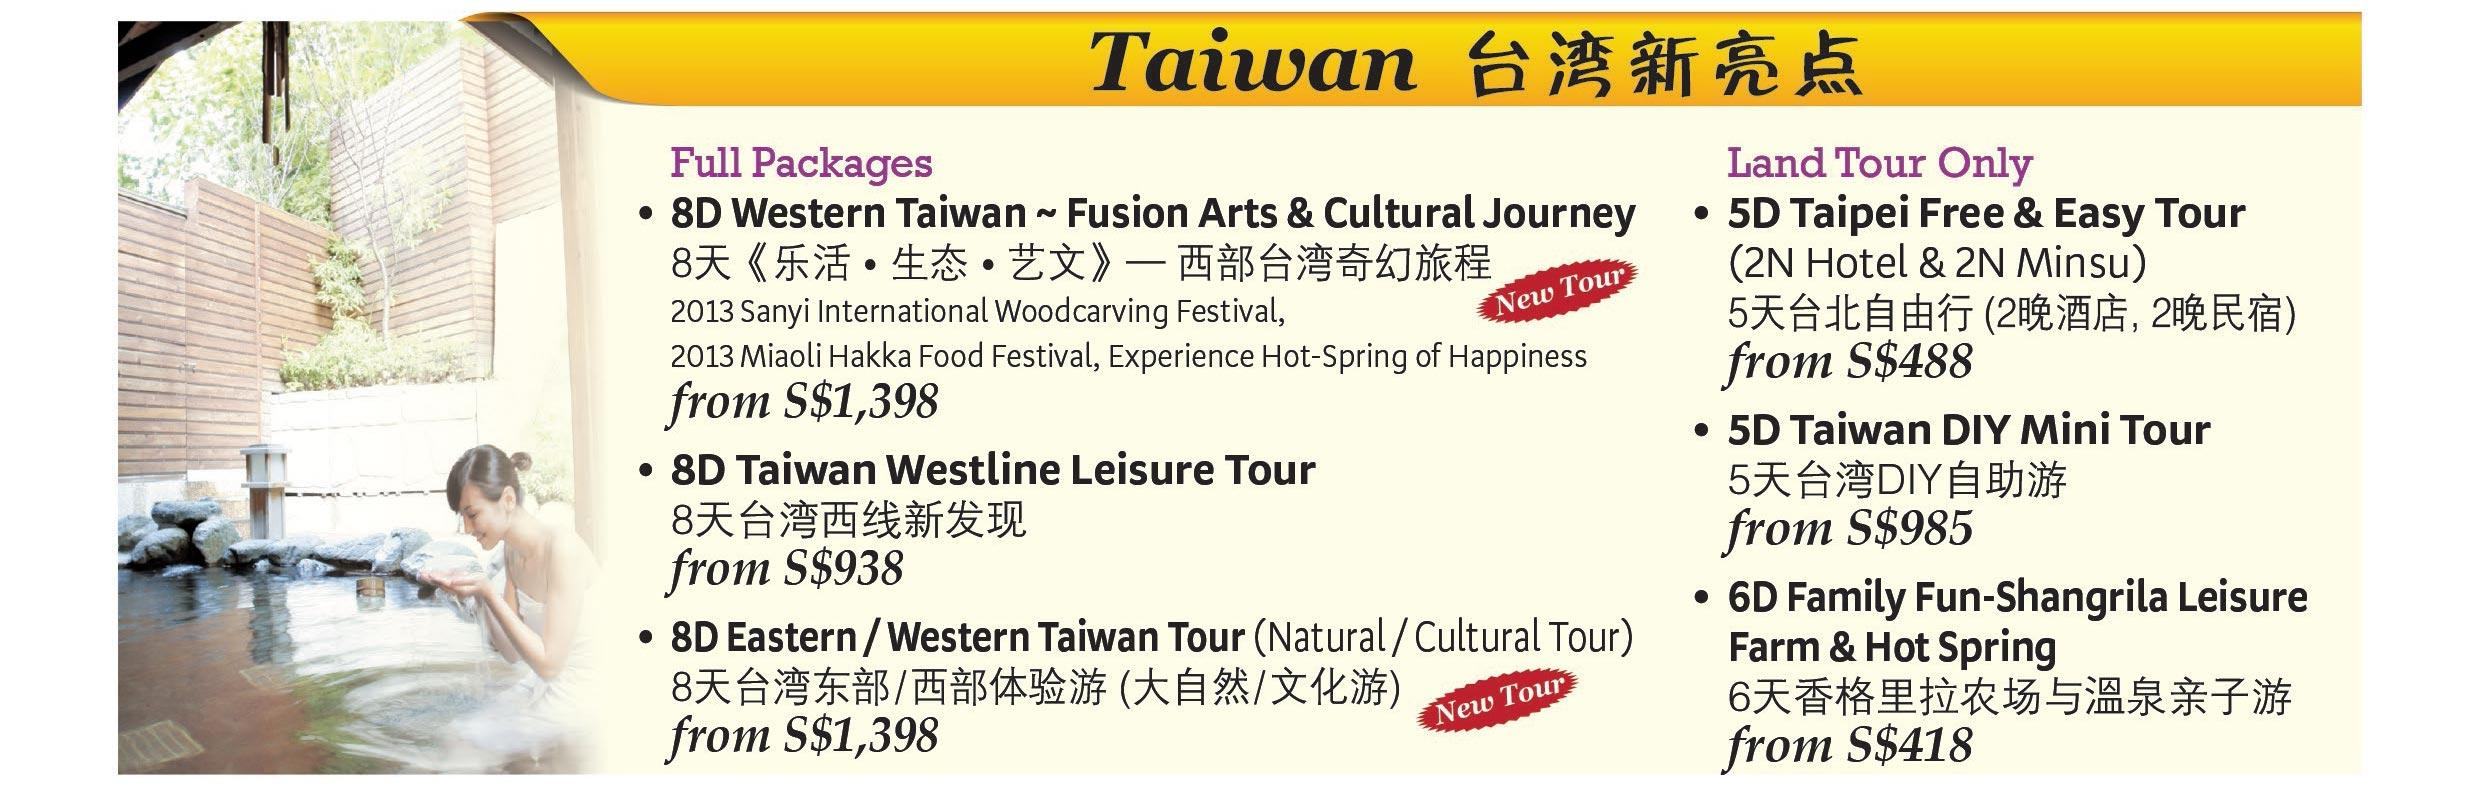 Holiday Package Deals Travel To Taiwan With Ik Chin